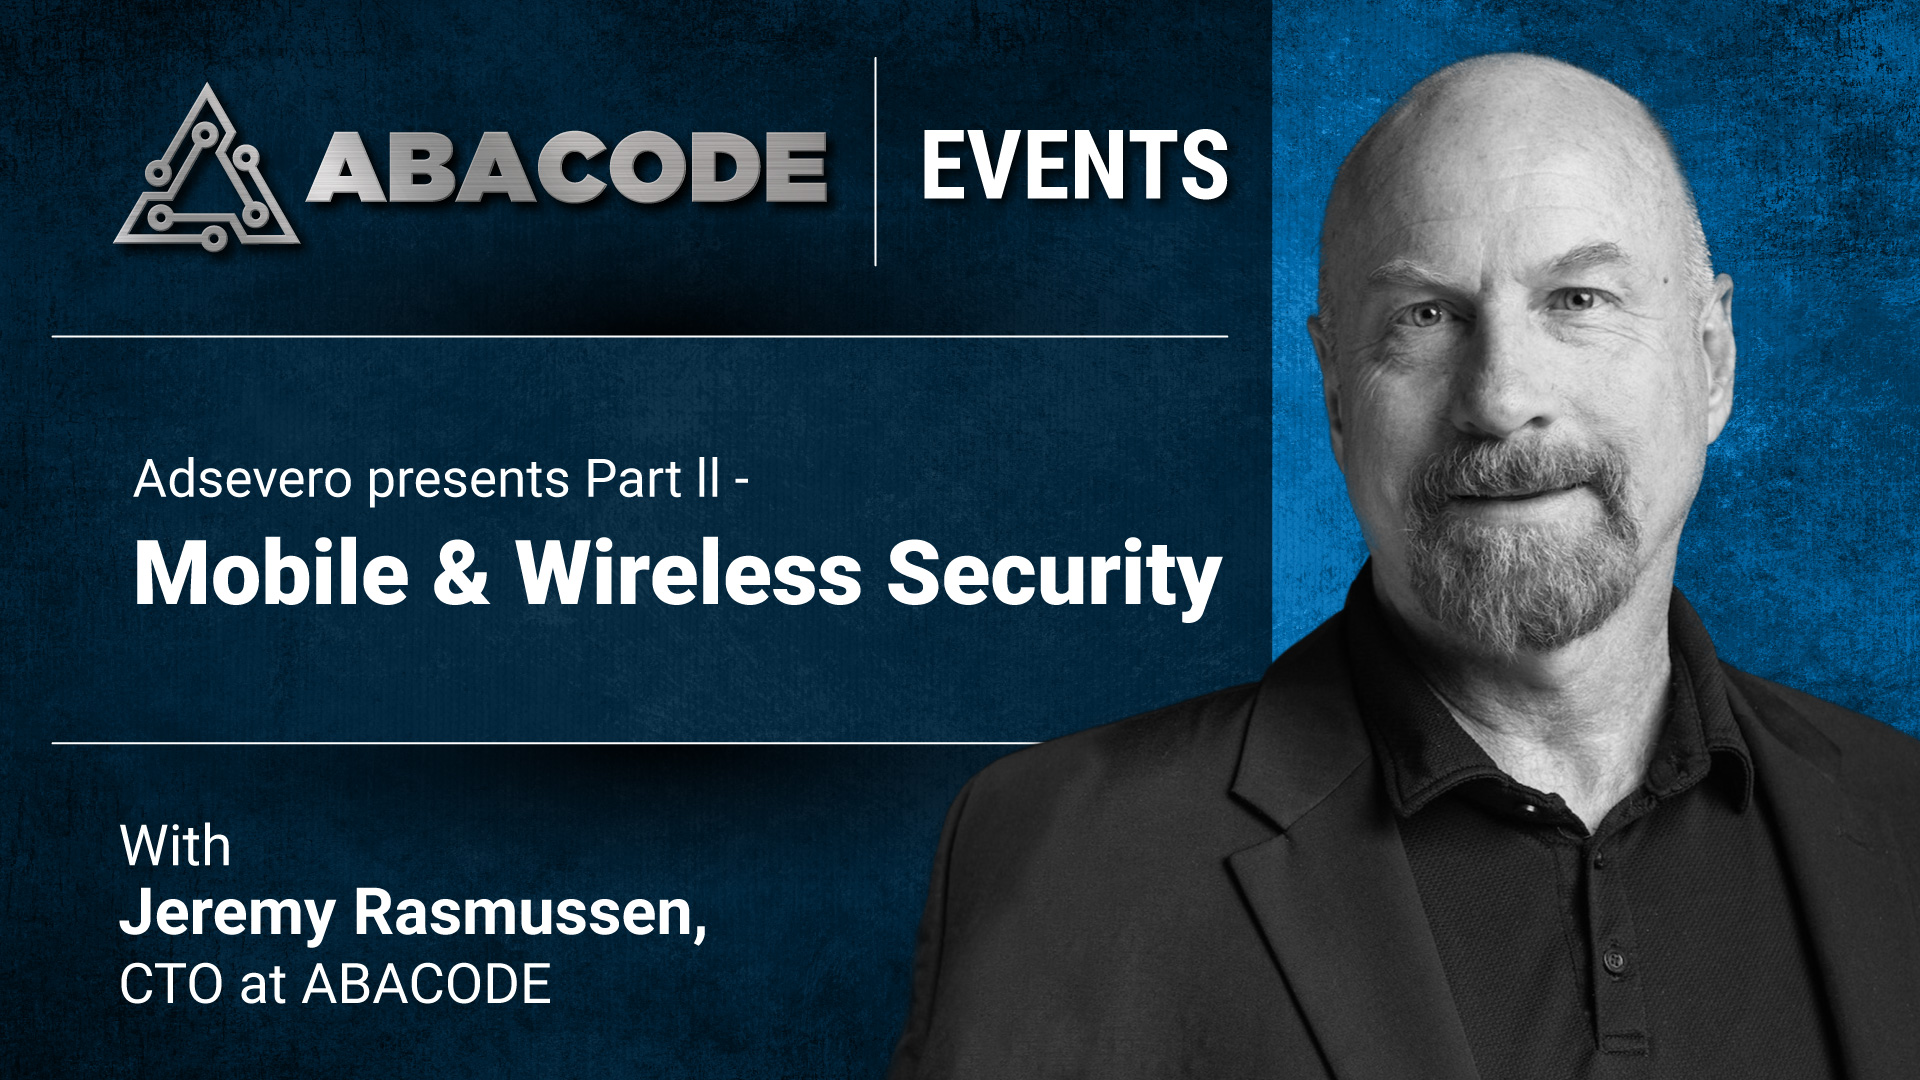 Abacode Events - Mobile & Wireless Security with Jeremy Rasmussen, CTO at ABACODE